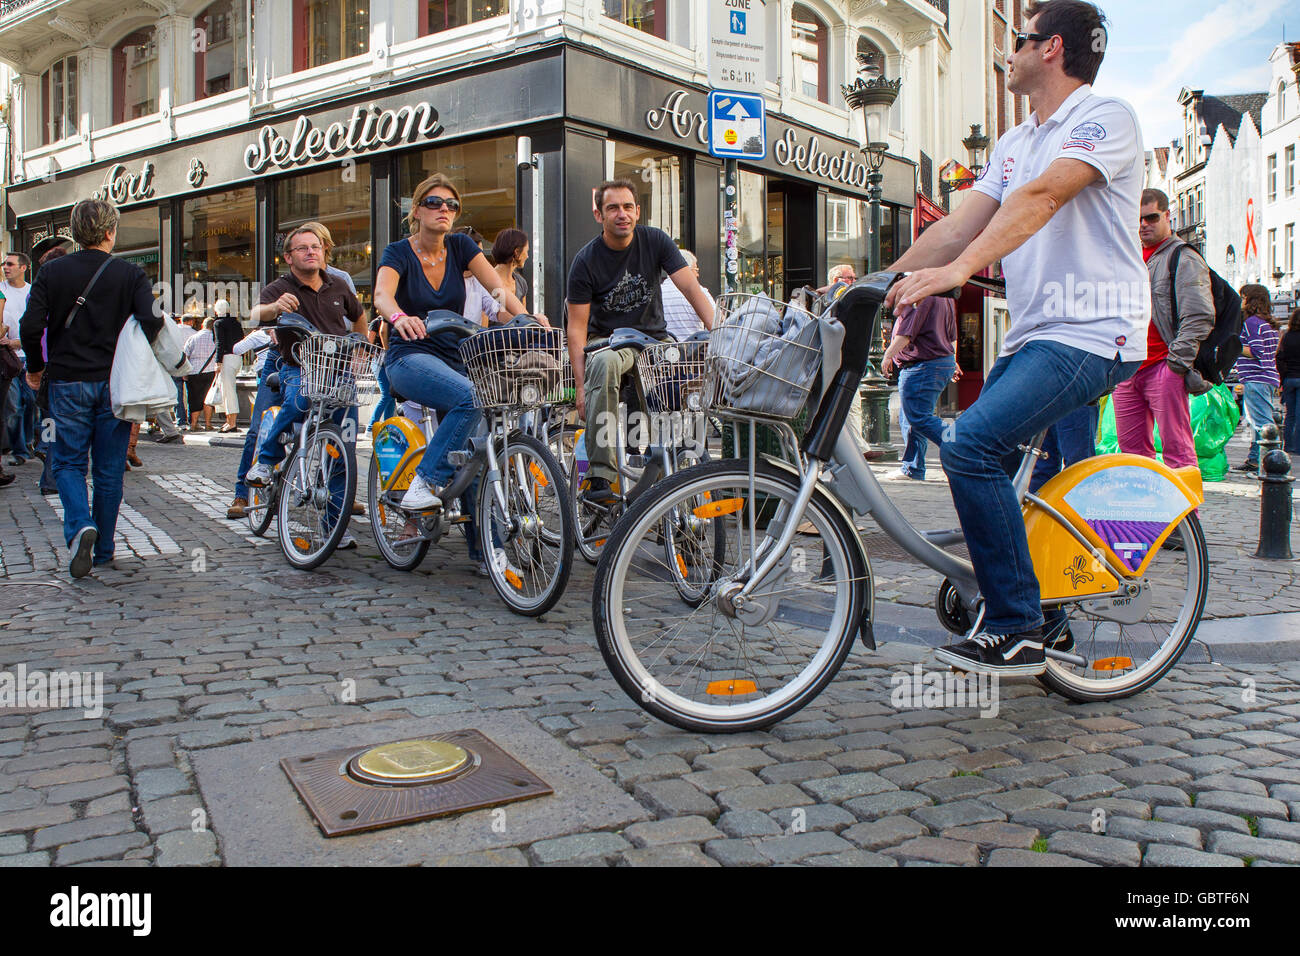 group tourists villo bicycles bikes cycle brussels - Stock Image